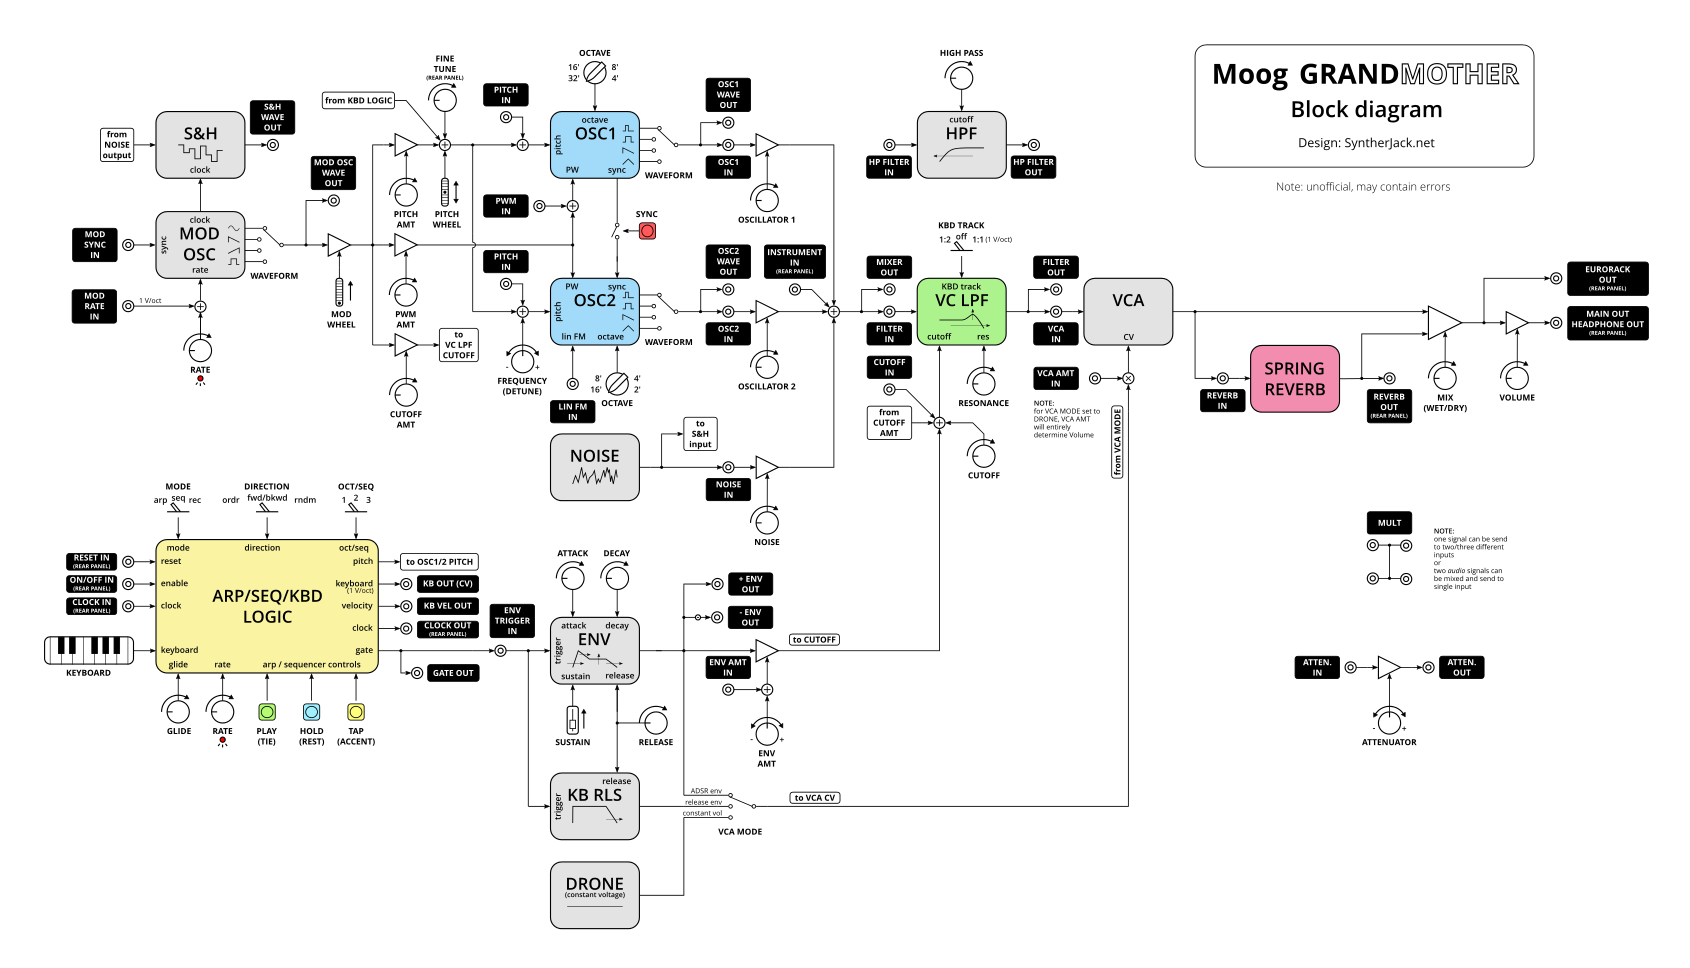 Alternative Moog Grandmater block diagram